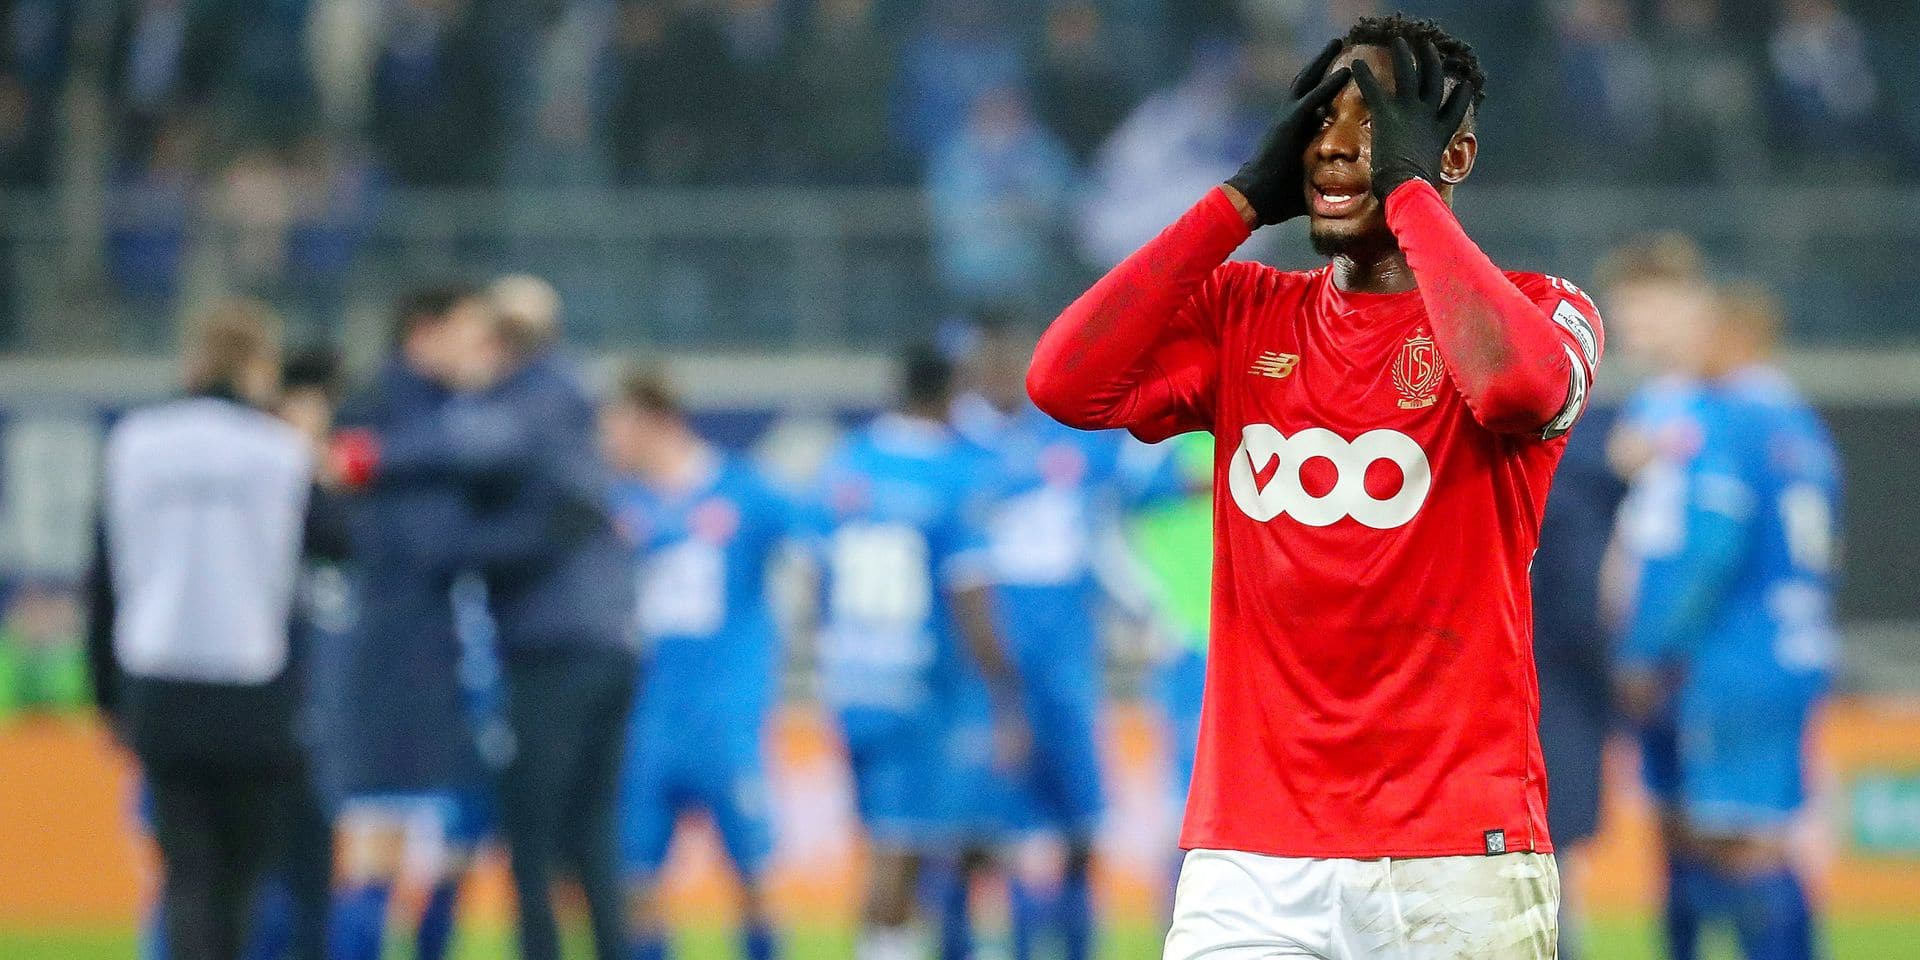 Standard's Paul-Jose Mpoku M'Poku Ebunge looks dejected after a soccer match between KAA Gent and Standard de Liege, Friday 22 February 2019 in Gent, on day 27th of the 'Jupiler Pro League' Belgian soccer championship season 2018-2019. BELGA PHOTO VIRGINIE LEFOUR